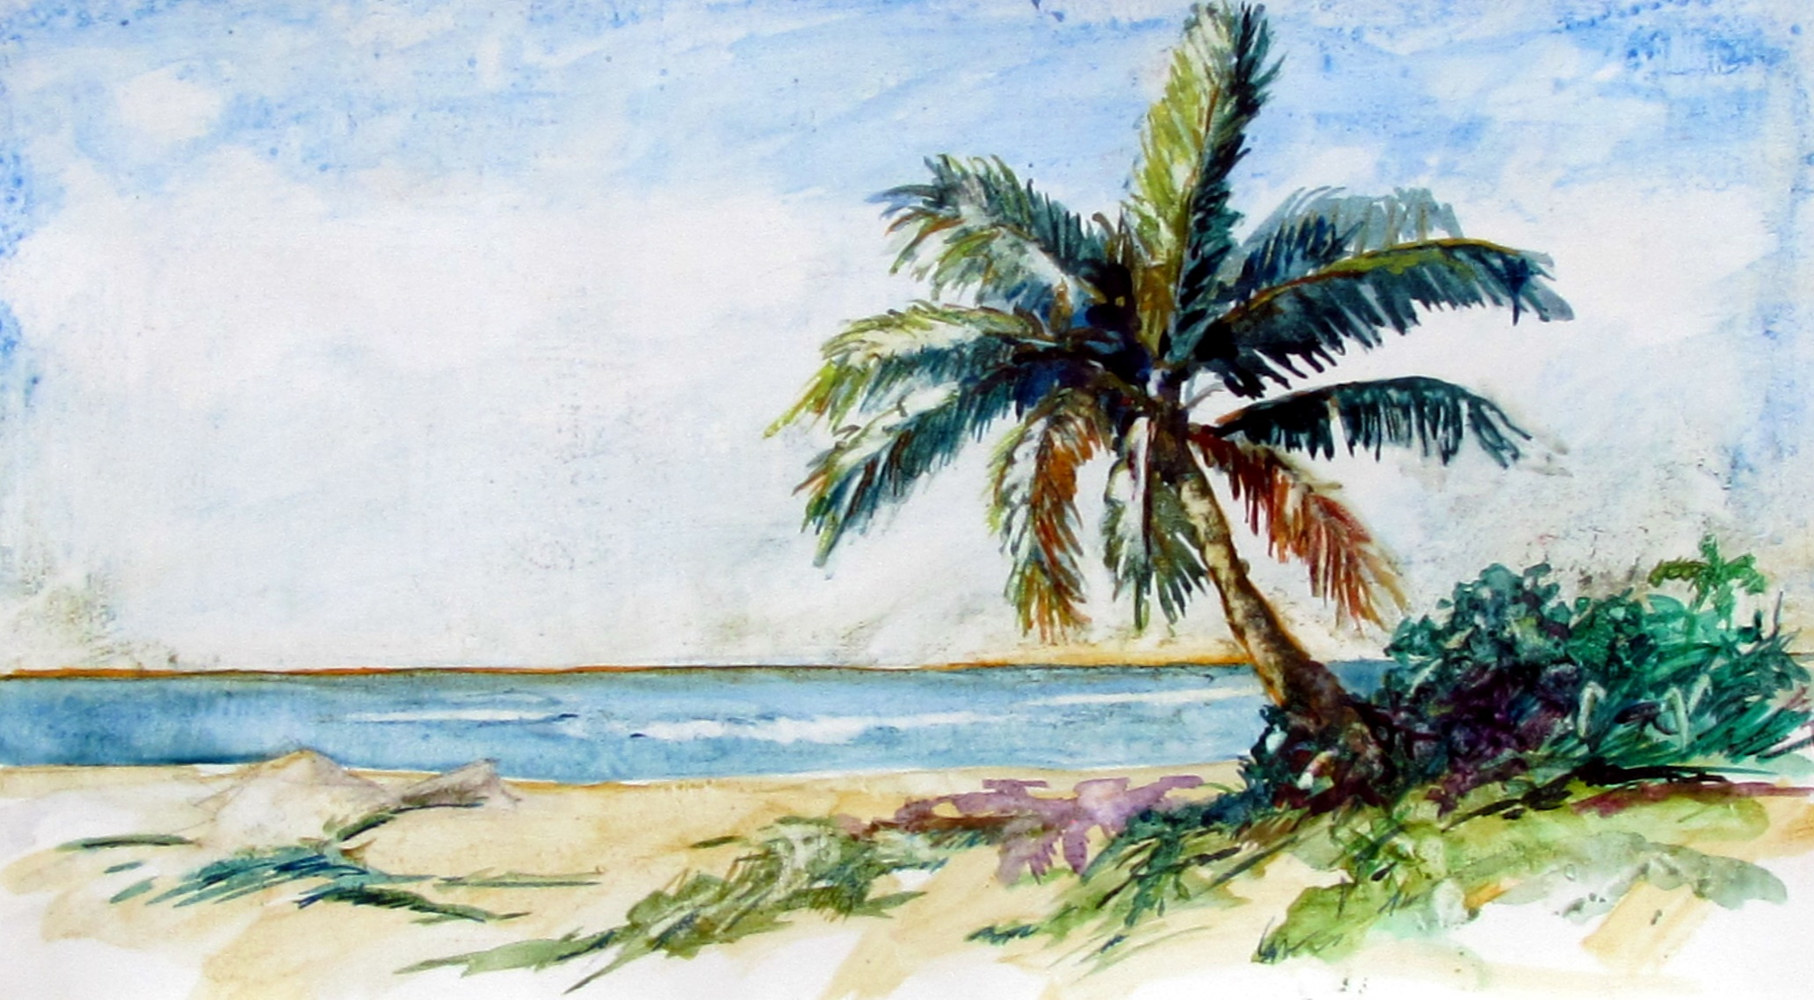 Watercolor A Beach in the Keys by Paul Sershon